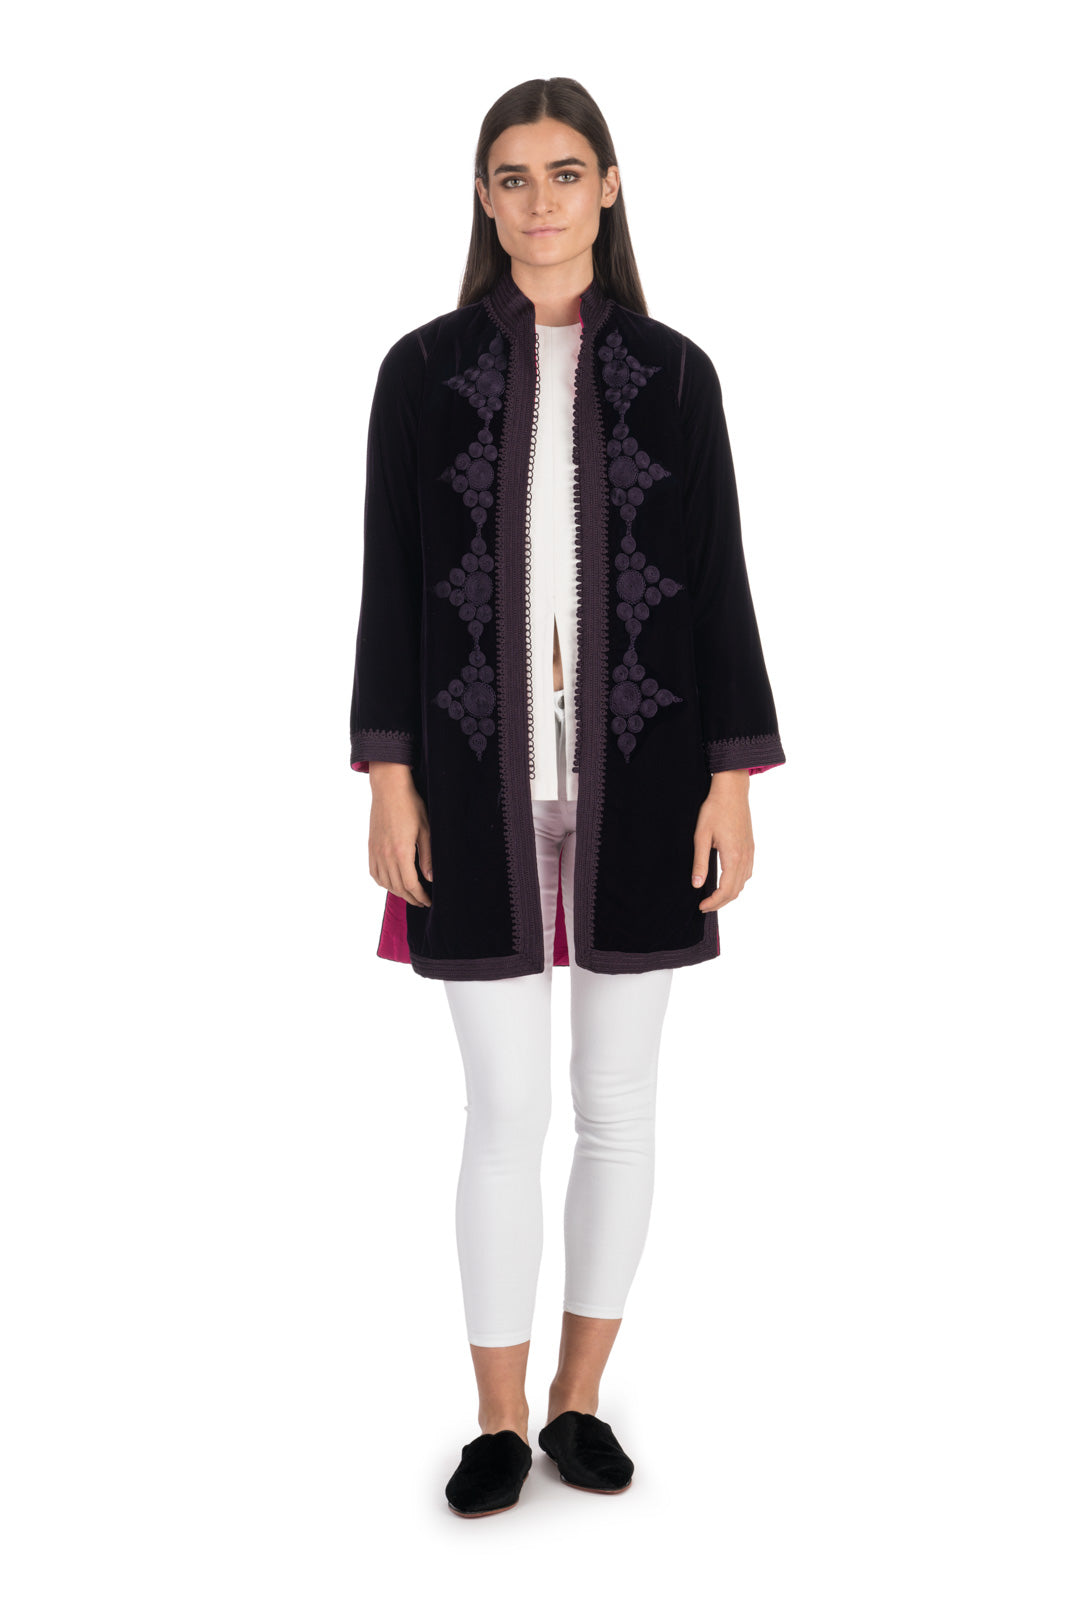 Aubergine Embroidered Velvet Tunic Coat with Fuchsia Silk Lining